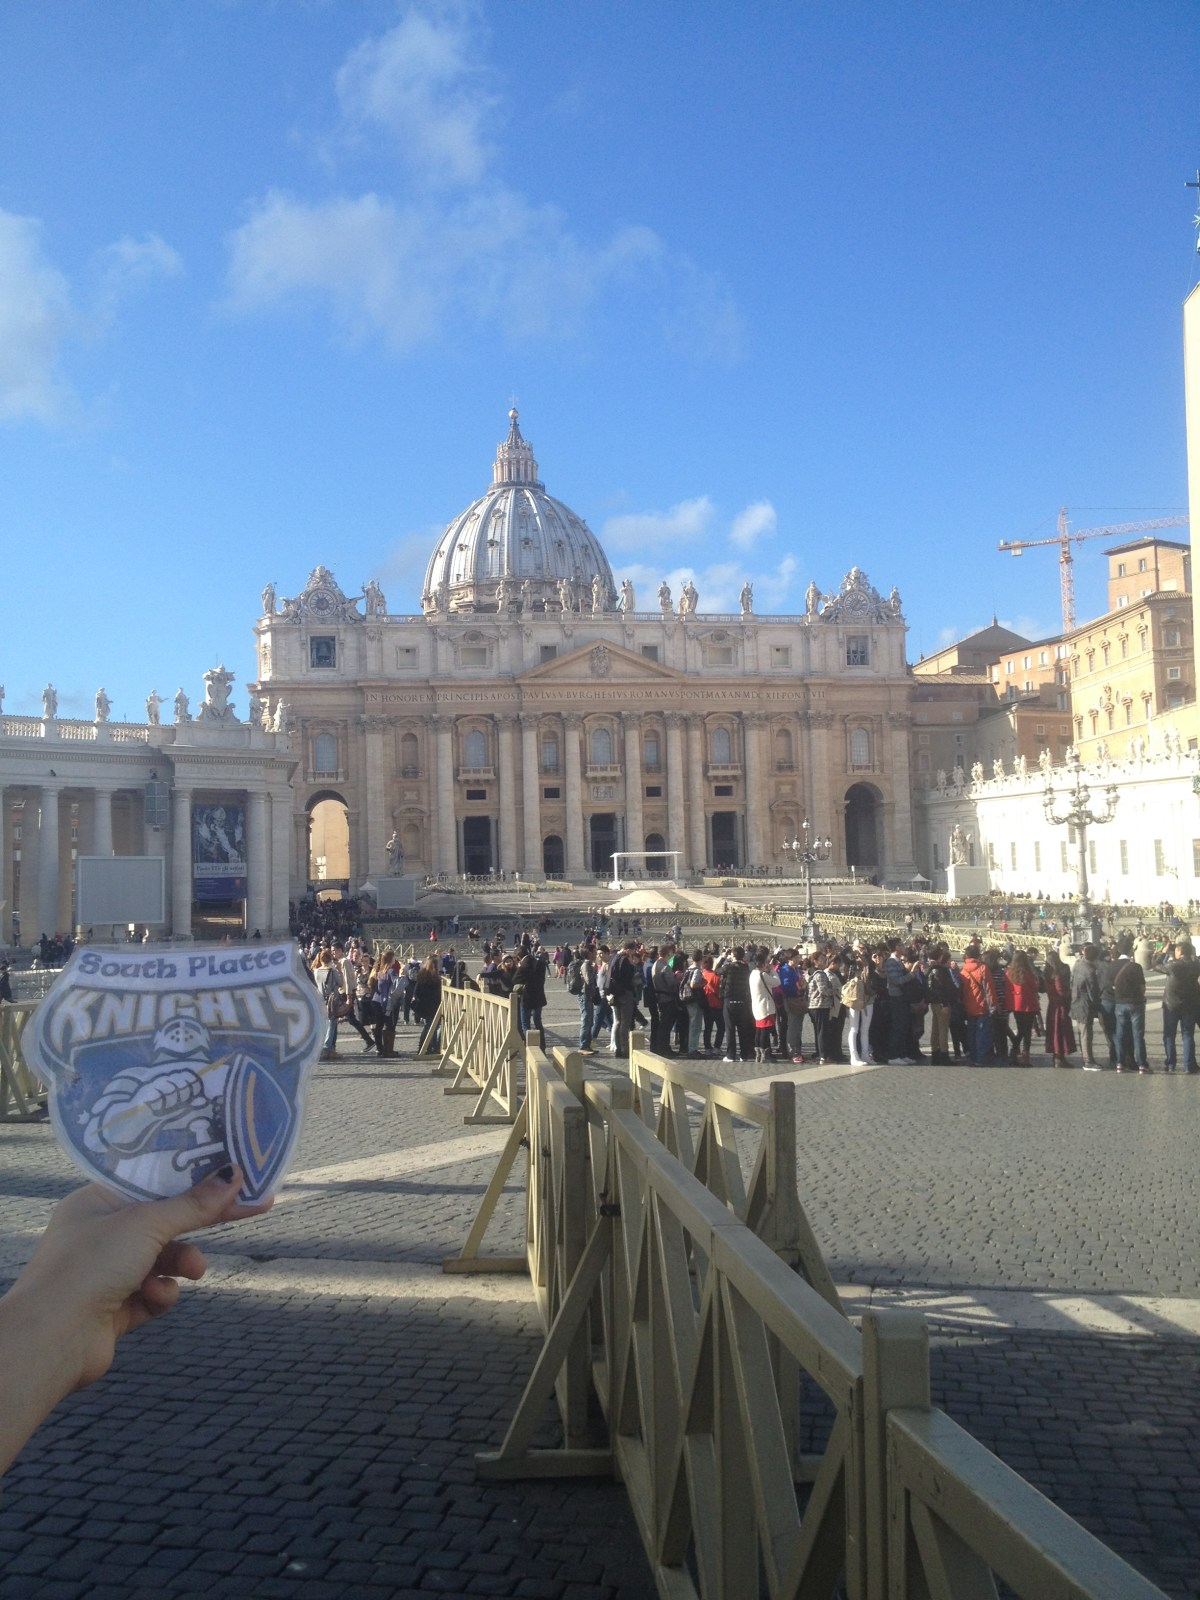 St. Peter's Basilica in Rome, Italy: Photo Gallery